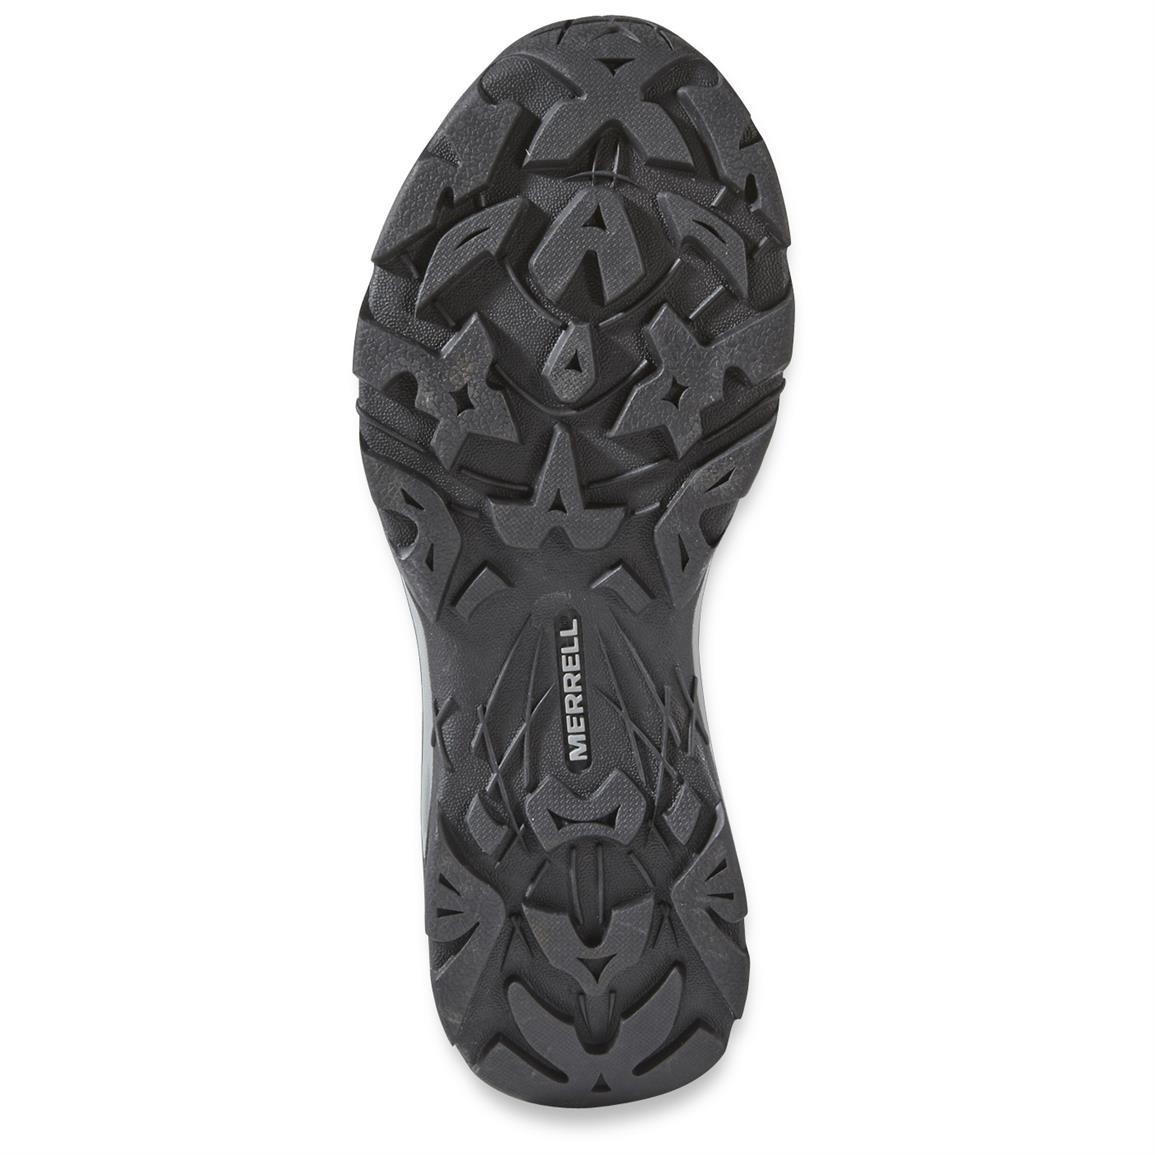 Sticky rubber outsole for traction